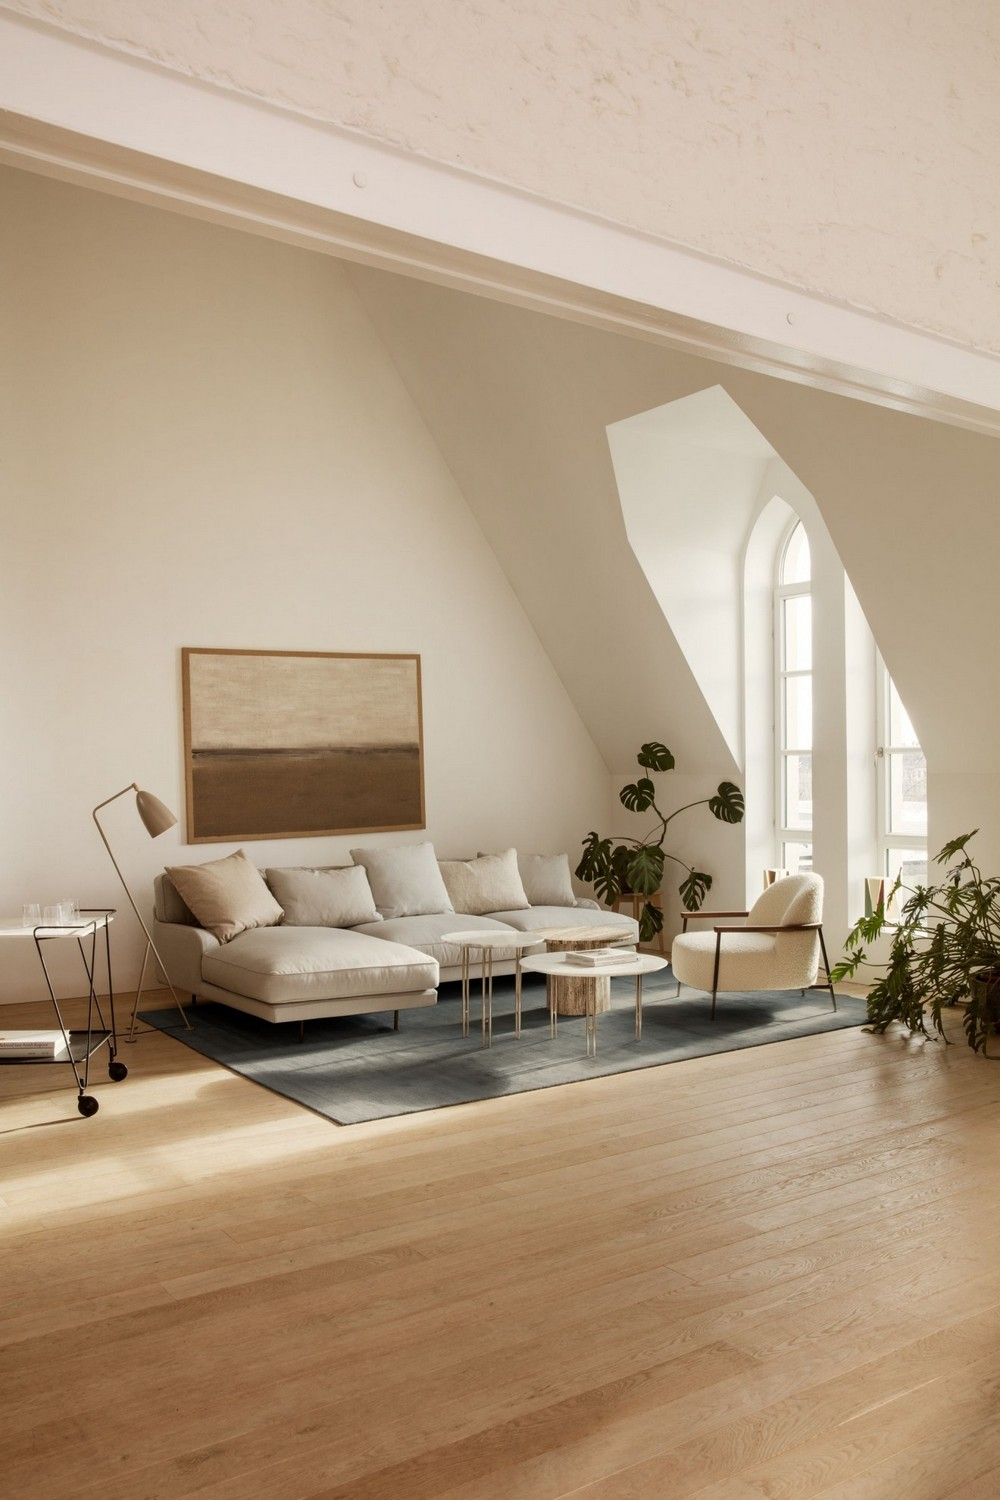 Color Trends Beige Chosen as the Ultimate Neutral Tone for 2021 3 color trends Color Trends: Beige Chosen as the Ultimate Neutral Tone for 2021 Color Trends Beige Chosen as the Ultimate Neutral Tone for 2021 3